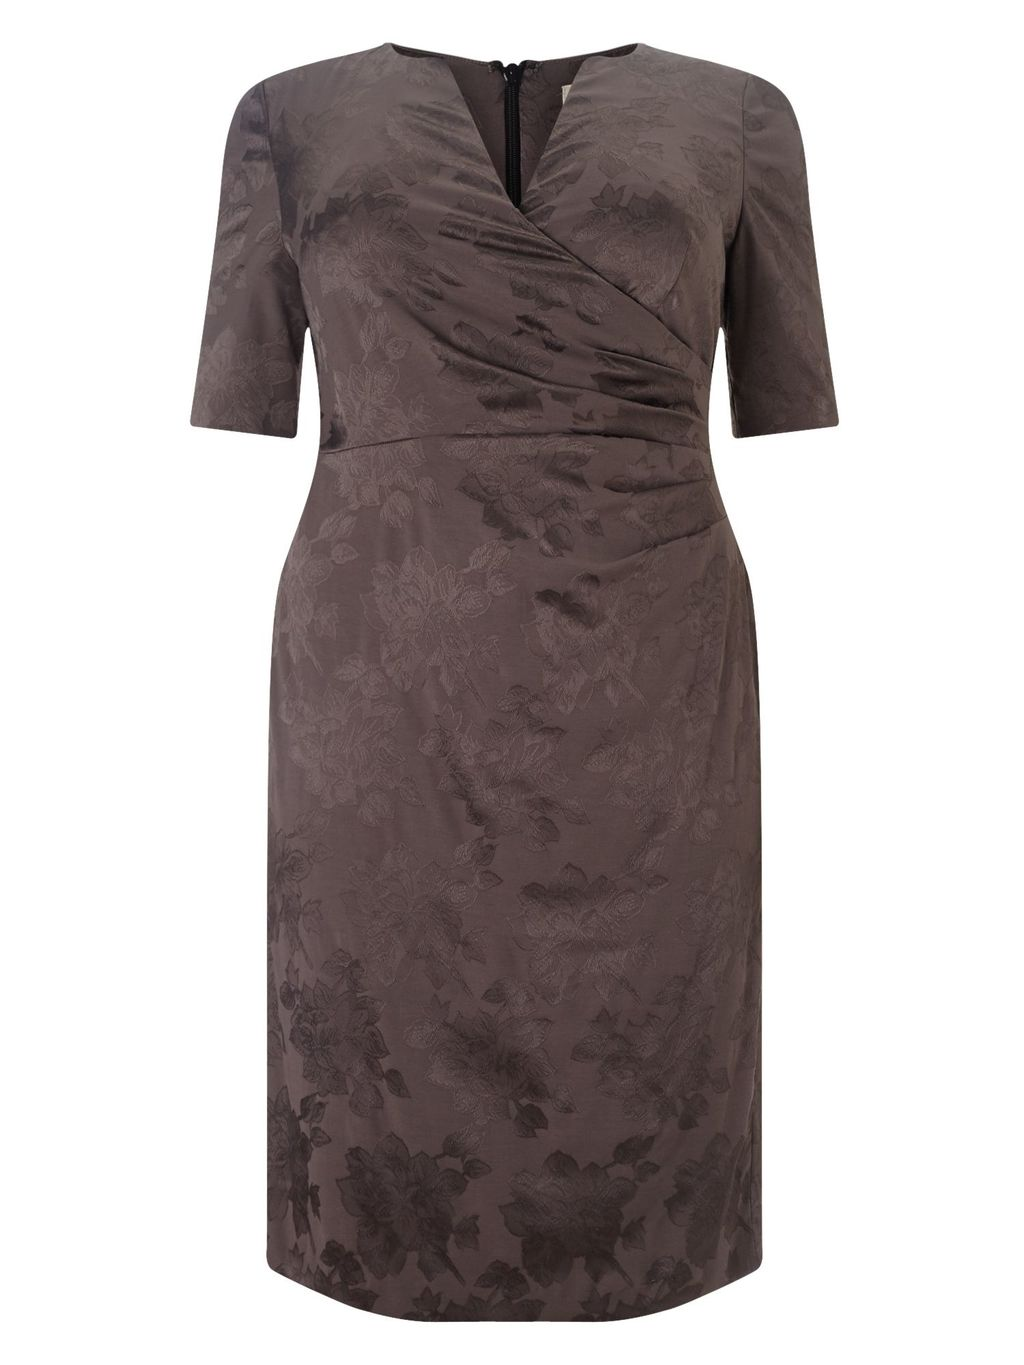 Rosalie Dress, Grey - style: faux wrap/wrap; neckline: v-neck; fit: tailored/fitted; predominant colour: taupe; length: just above the knee; fibres: polyester/polyamide - 100%; occasions: occasion; sleeve length: half sleeve; sleeve style: standard; pattern type: fabric; pattern size: standard; pattern: florals; texture group: brocade/jacquard; season: s/s 2016; wardrobe: event